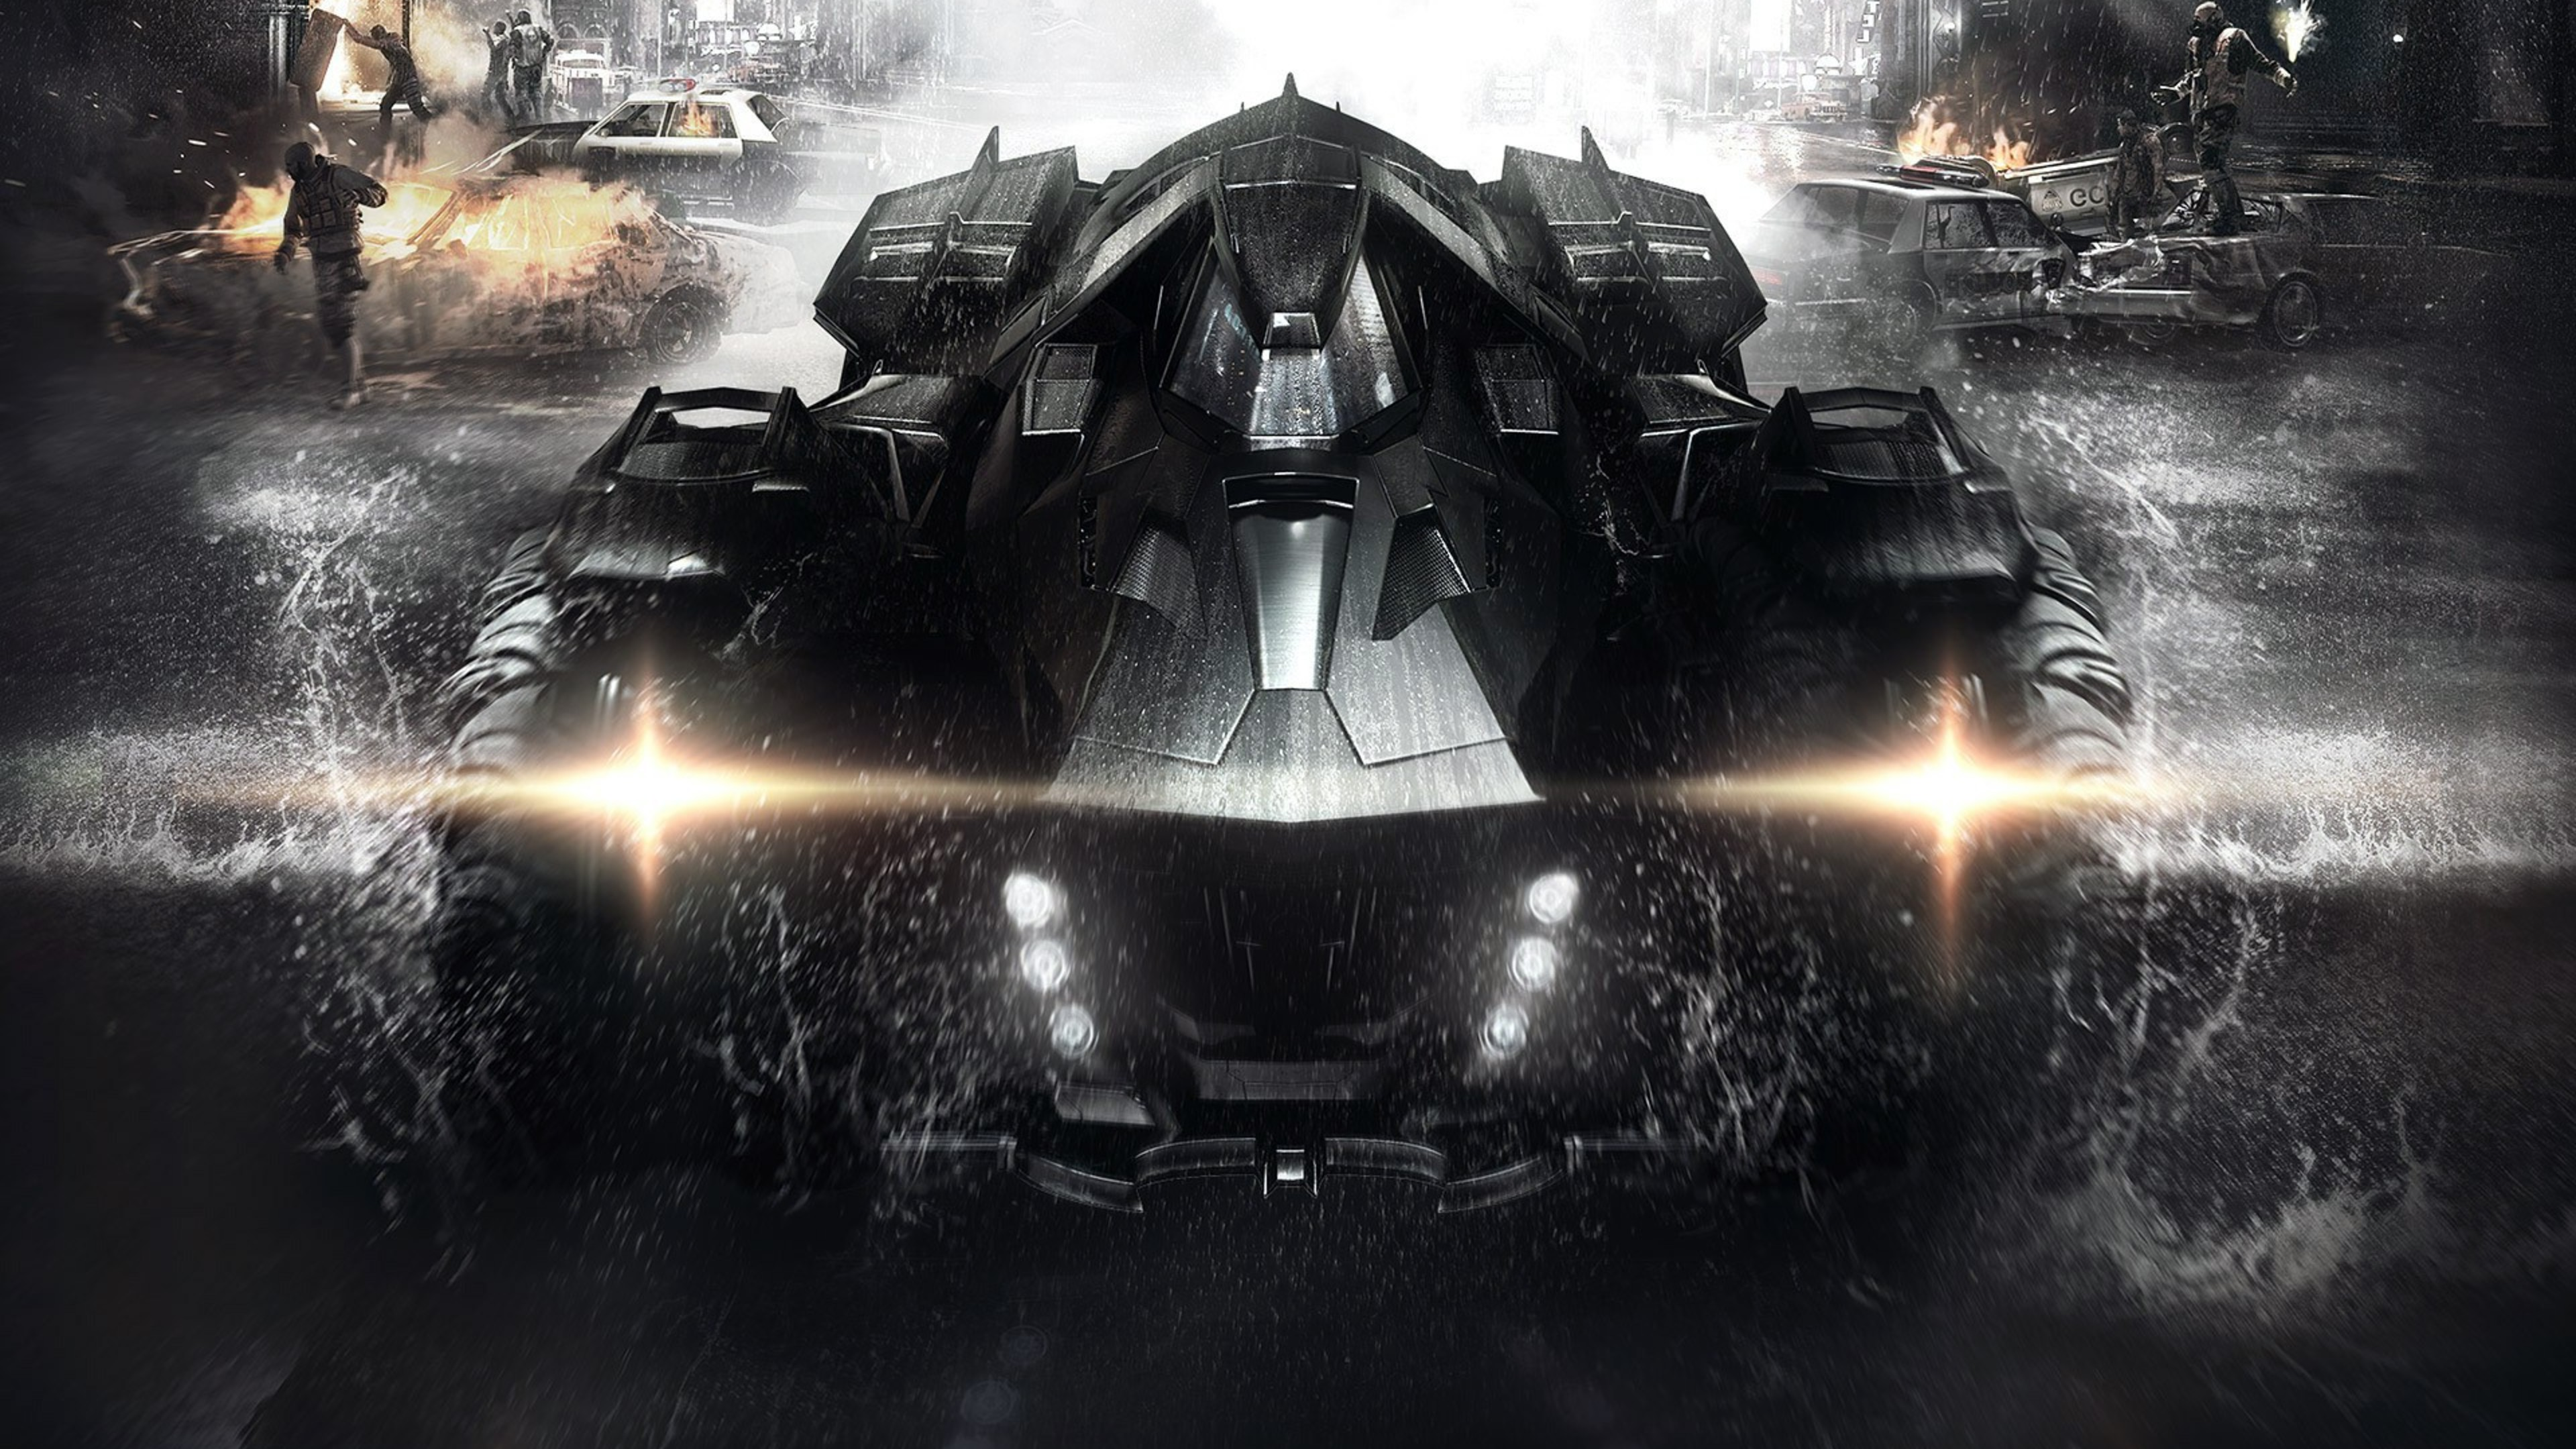 Batmobile, HD Games, 4k Wallpapers, Images, Backgrounds ...